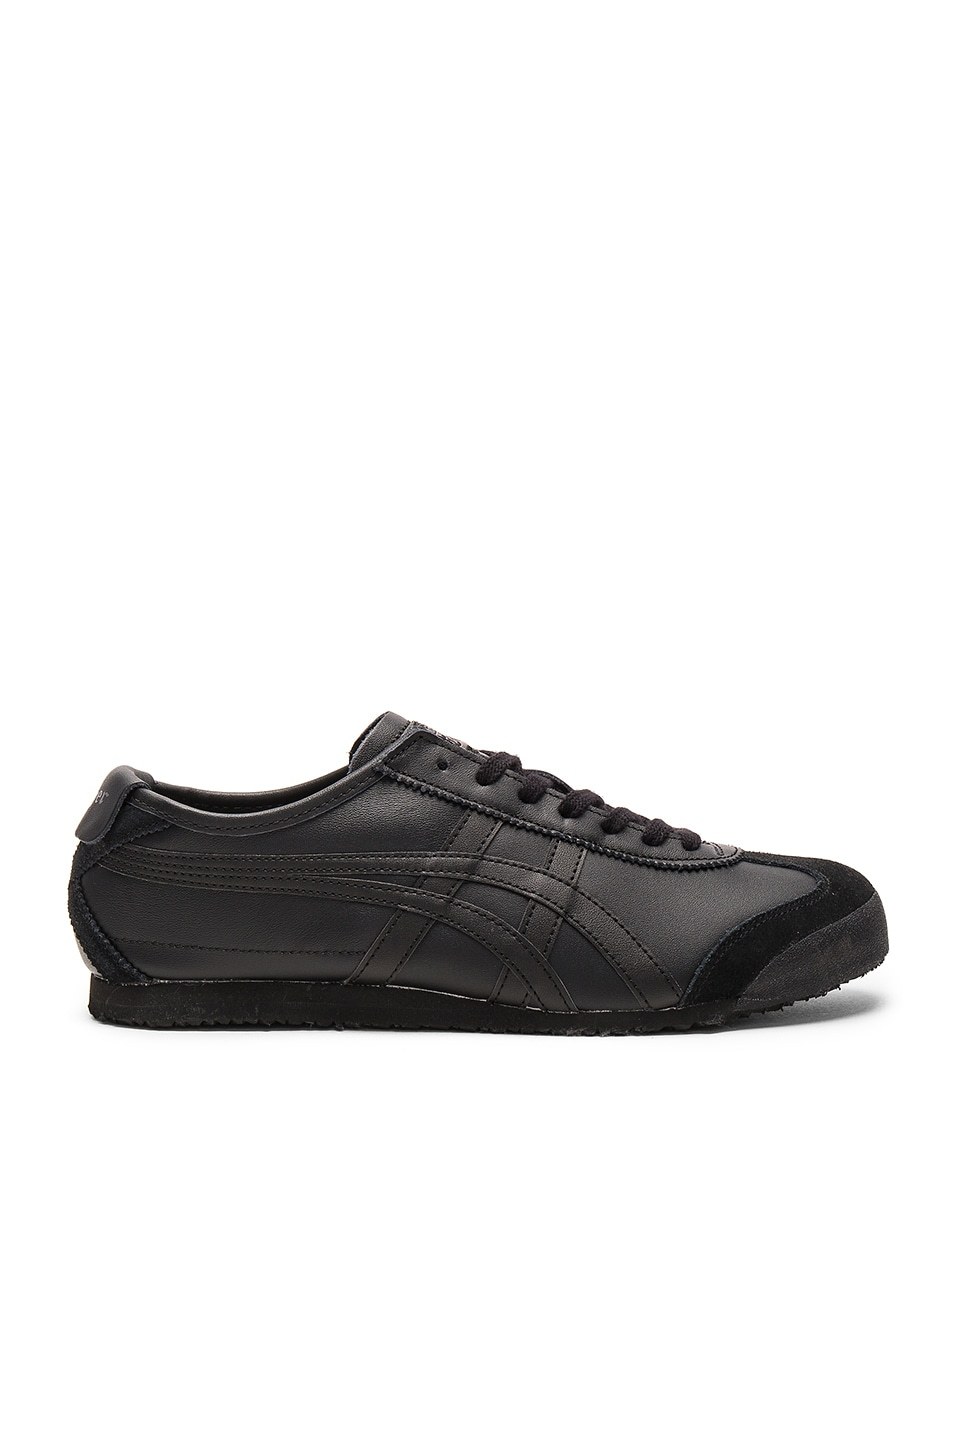 Onitsuka Tiger Mexico 66 in Black & Black